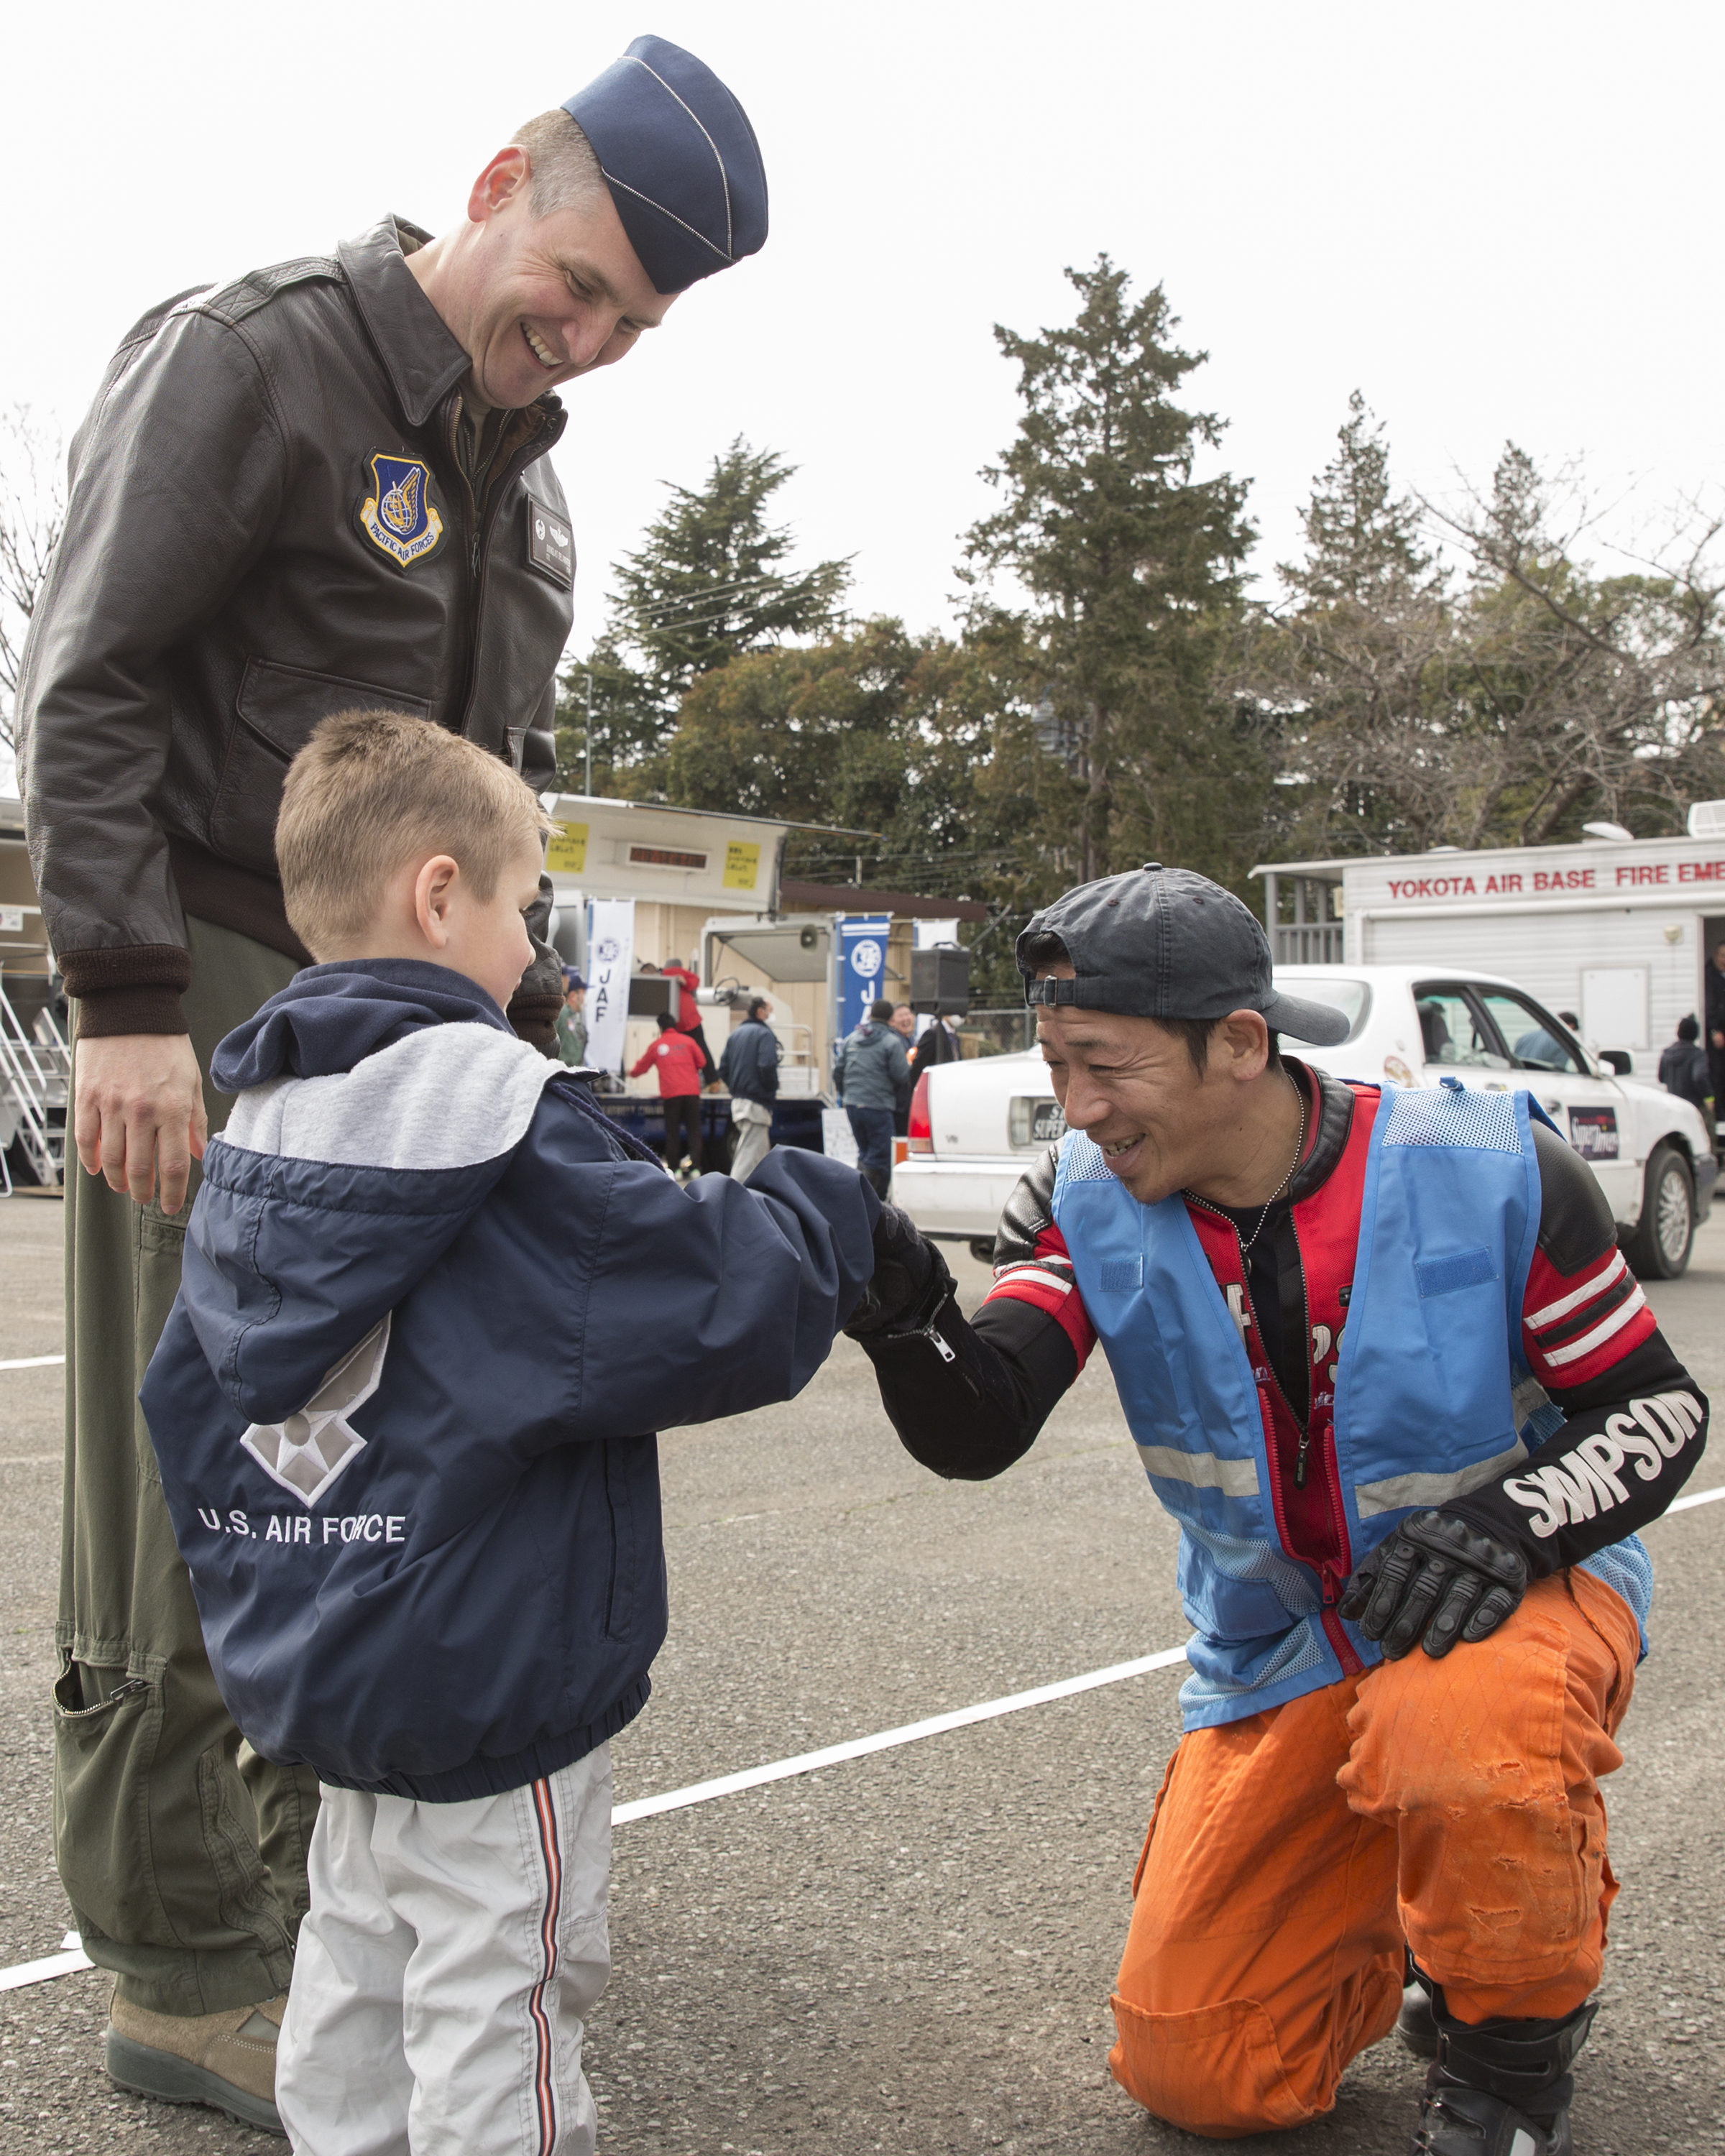 """Col. Douglas DeLaMater, 374th Airlift Wing commander, and his son, Christian, greet a member from the stunt project team """"Super Drivers"""" after a traffic safety demonstration at Yokota Air Base, Japan, March 6, 2015. The 374th Airlift Wing Safety provided Yokota residents with various events such as a Tokyo Metropolitan Police Department motorcycle unit demonstration, traffic safety demonstration, earthquake and smoke house, firefighting experience, fire ladder trucks experience, 374th Security Forces Squadron patrol vehicle ride, seatbelt simulator and child car seat checks. (U.S. Air Force photo by Osakabe Yasuo/Released)"""